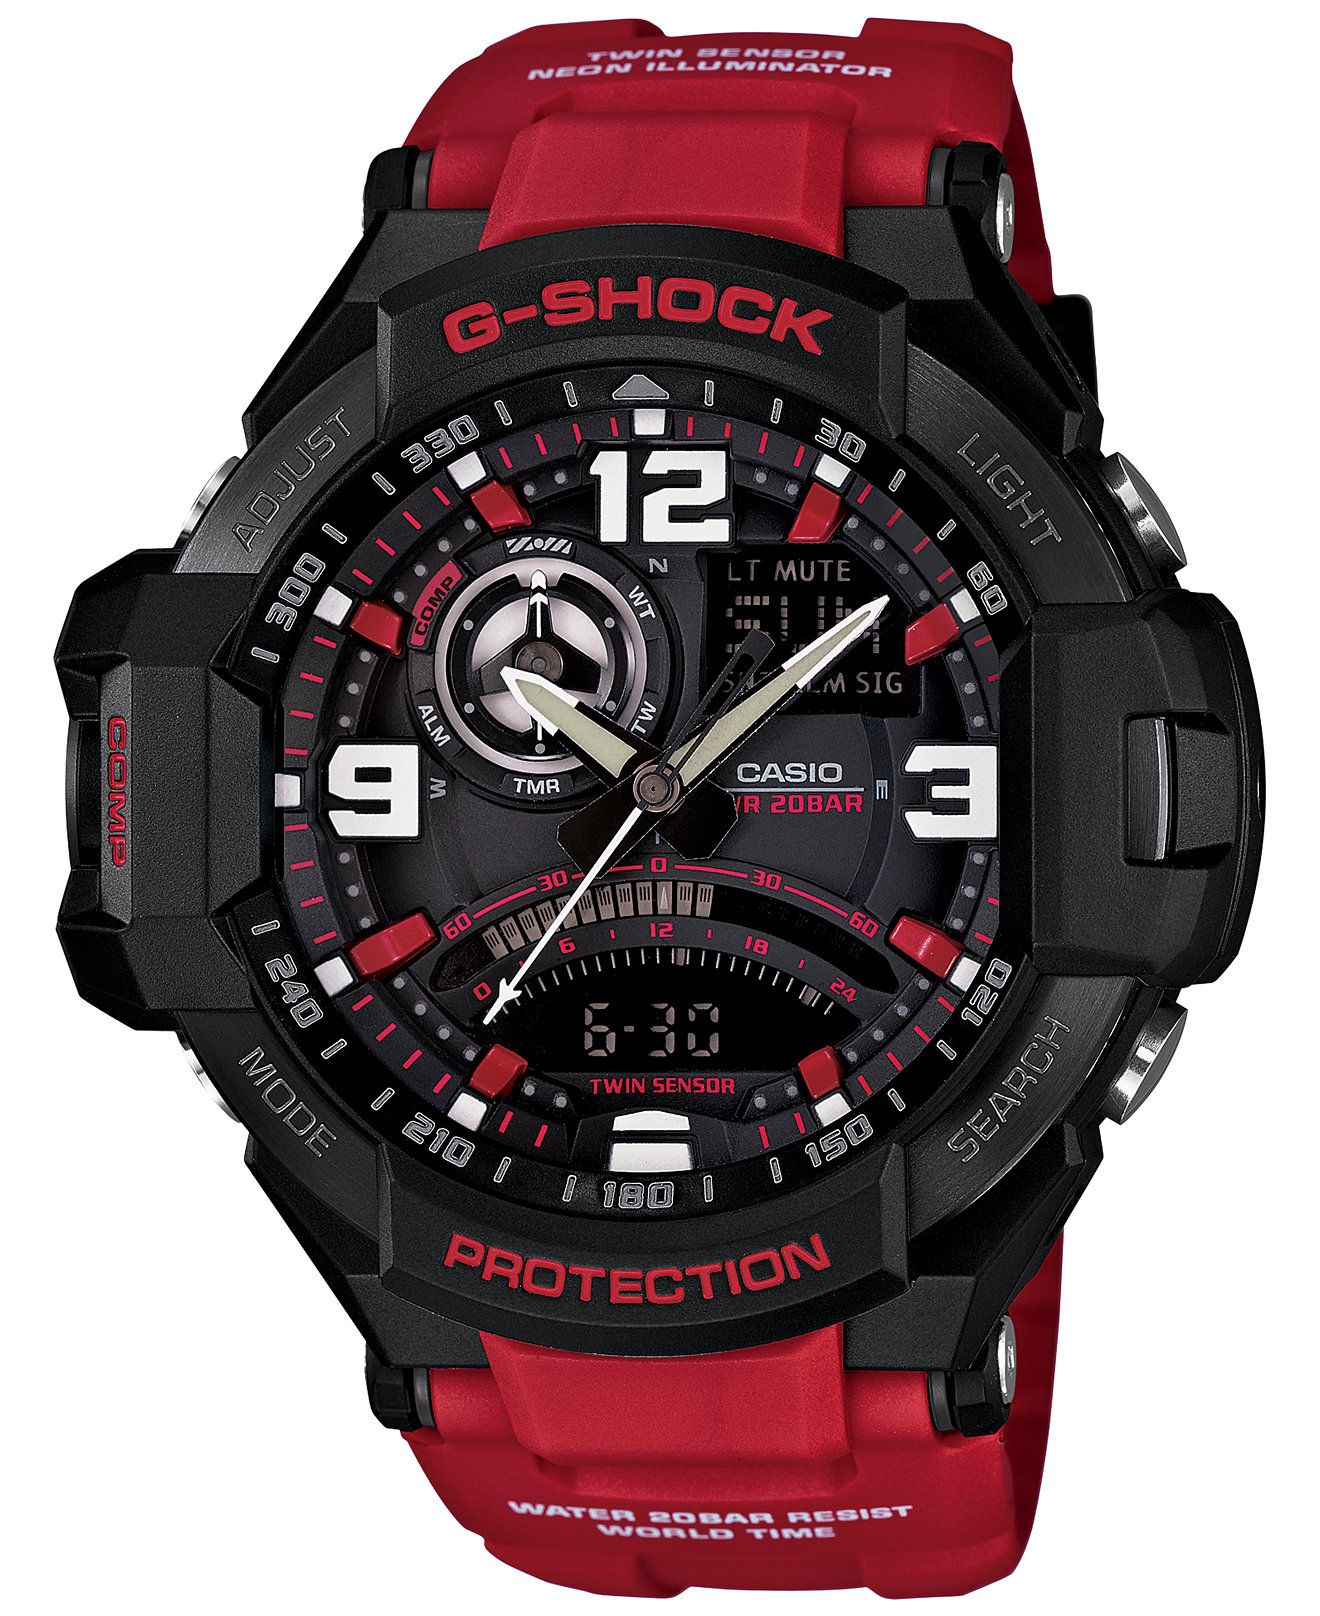 0242eae054f G-Shock Men s Analog-Digital Red Resin Strap Watch 51x52mm GA1000-4B -  Watches - Jewelry   Watches - Macy s